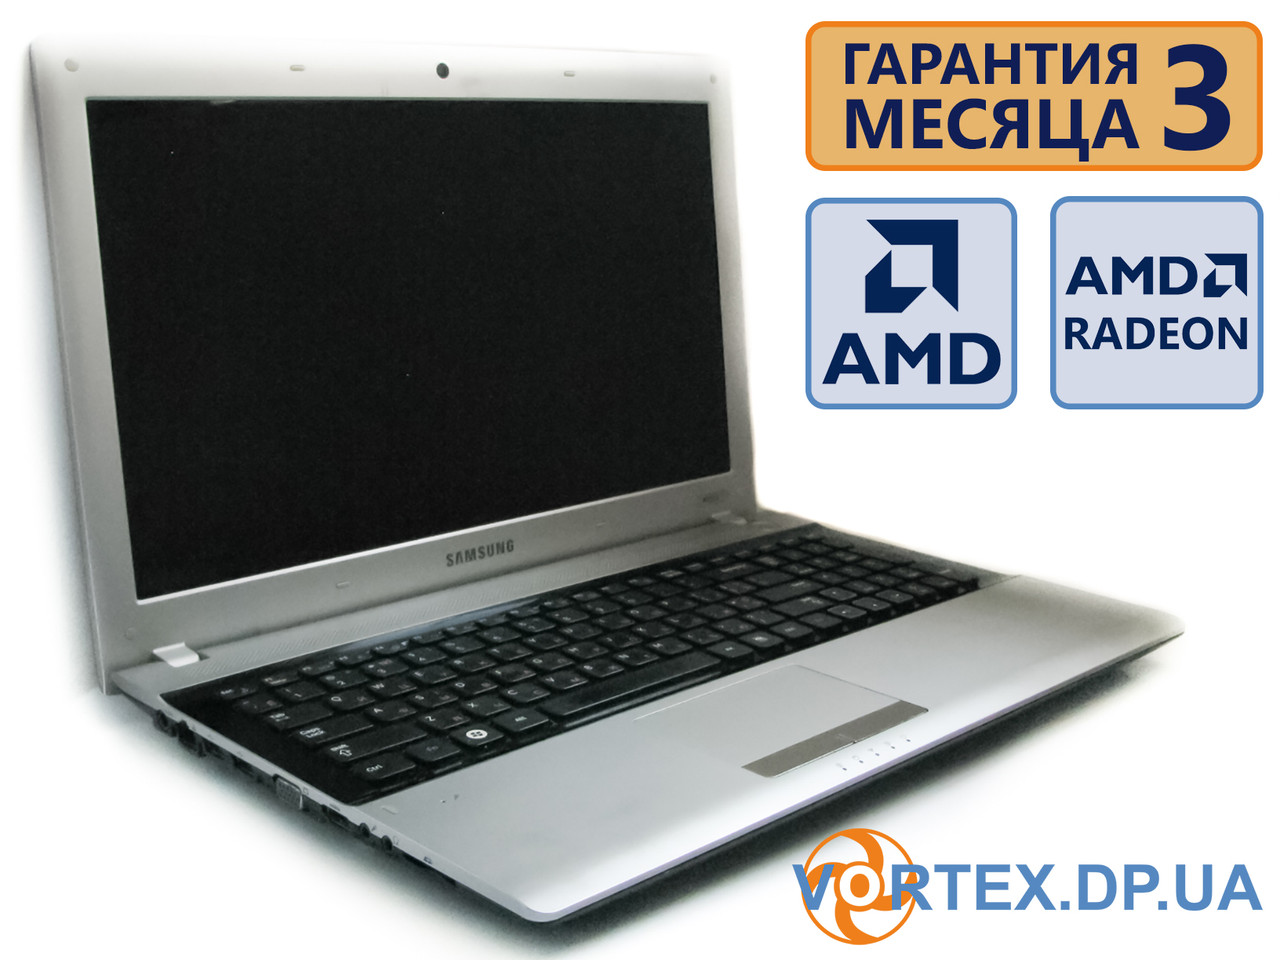 Ноутбук Samsung RV513 15.6 (1366x768) / AMD E450 (2x1.66GHz) / RAM 3Gb